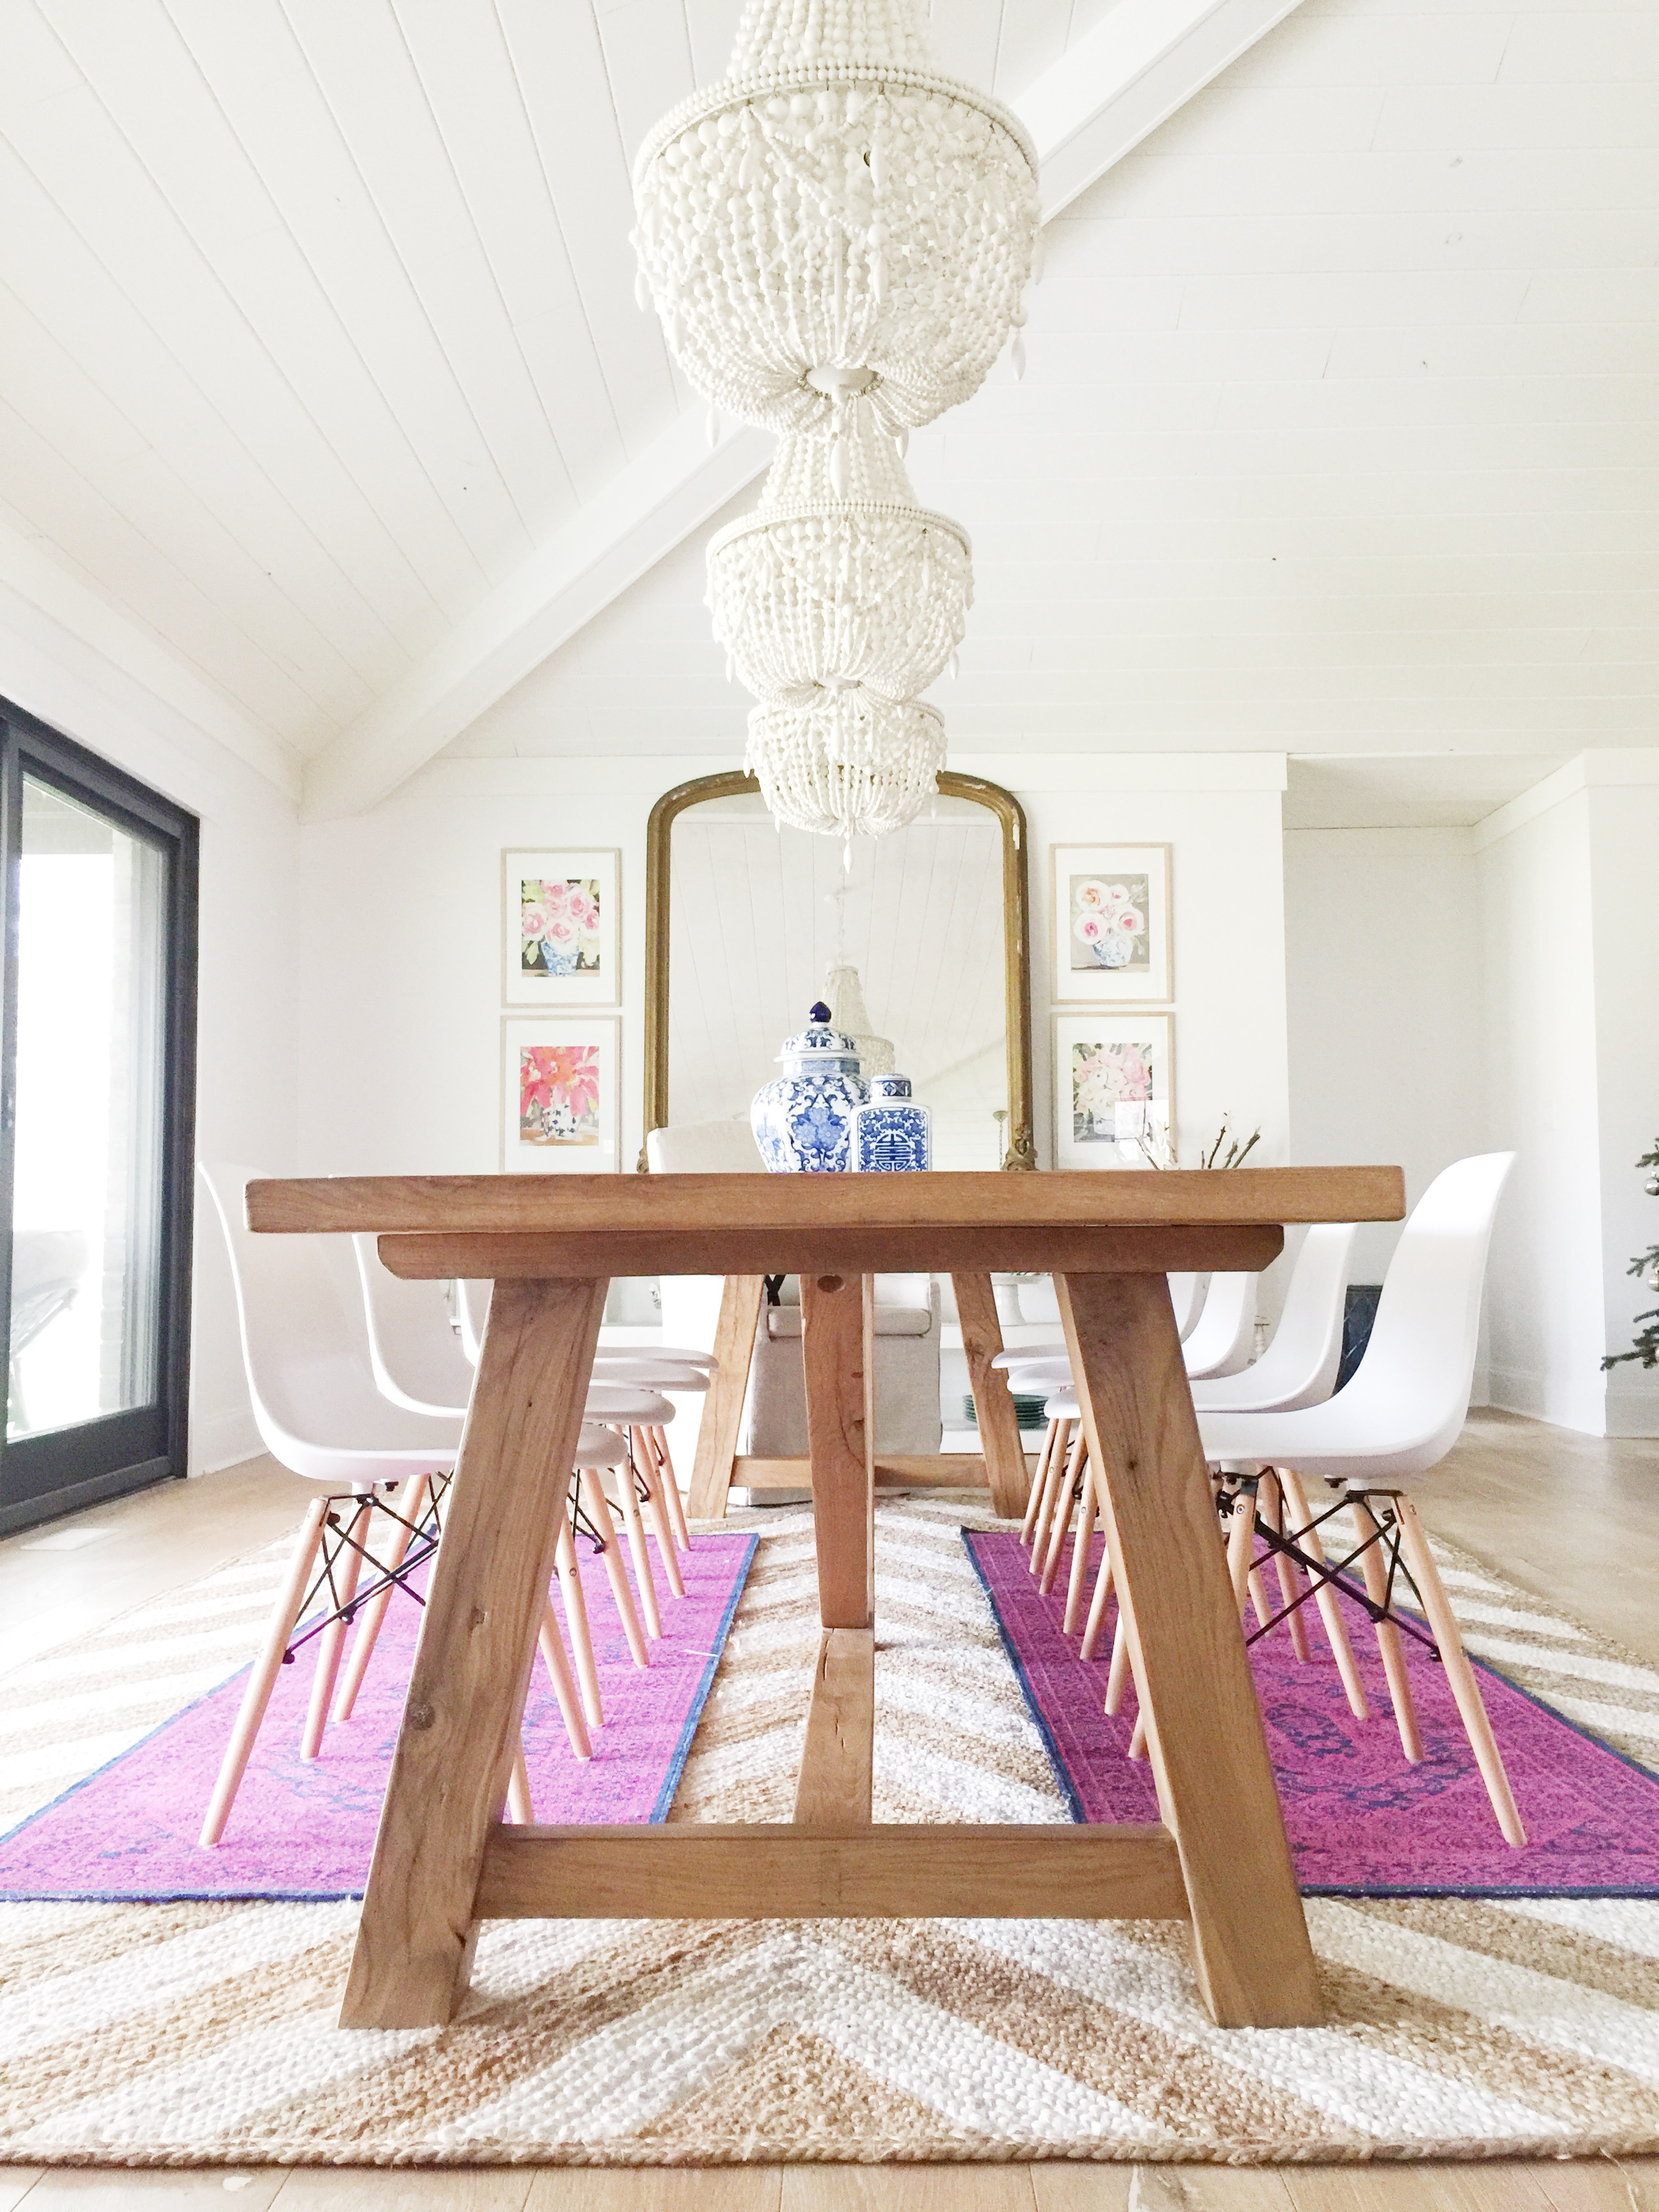 farmhouse_table_modern_chairs_chandeliers_boho_kilim